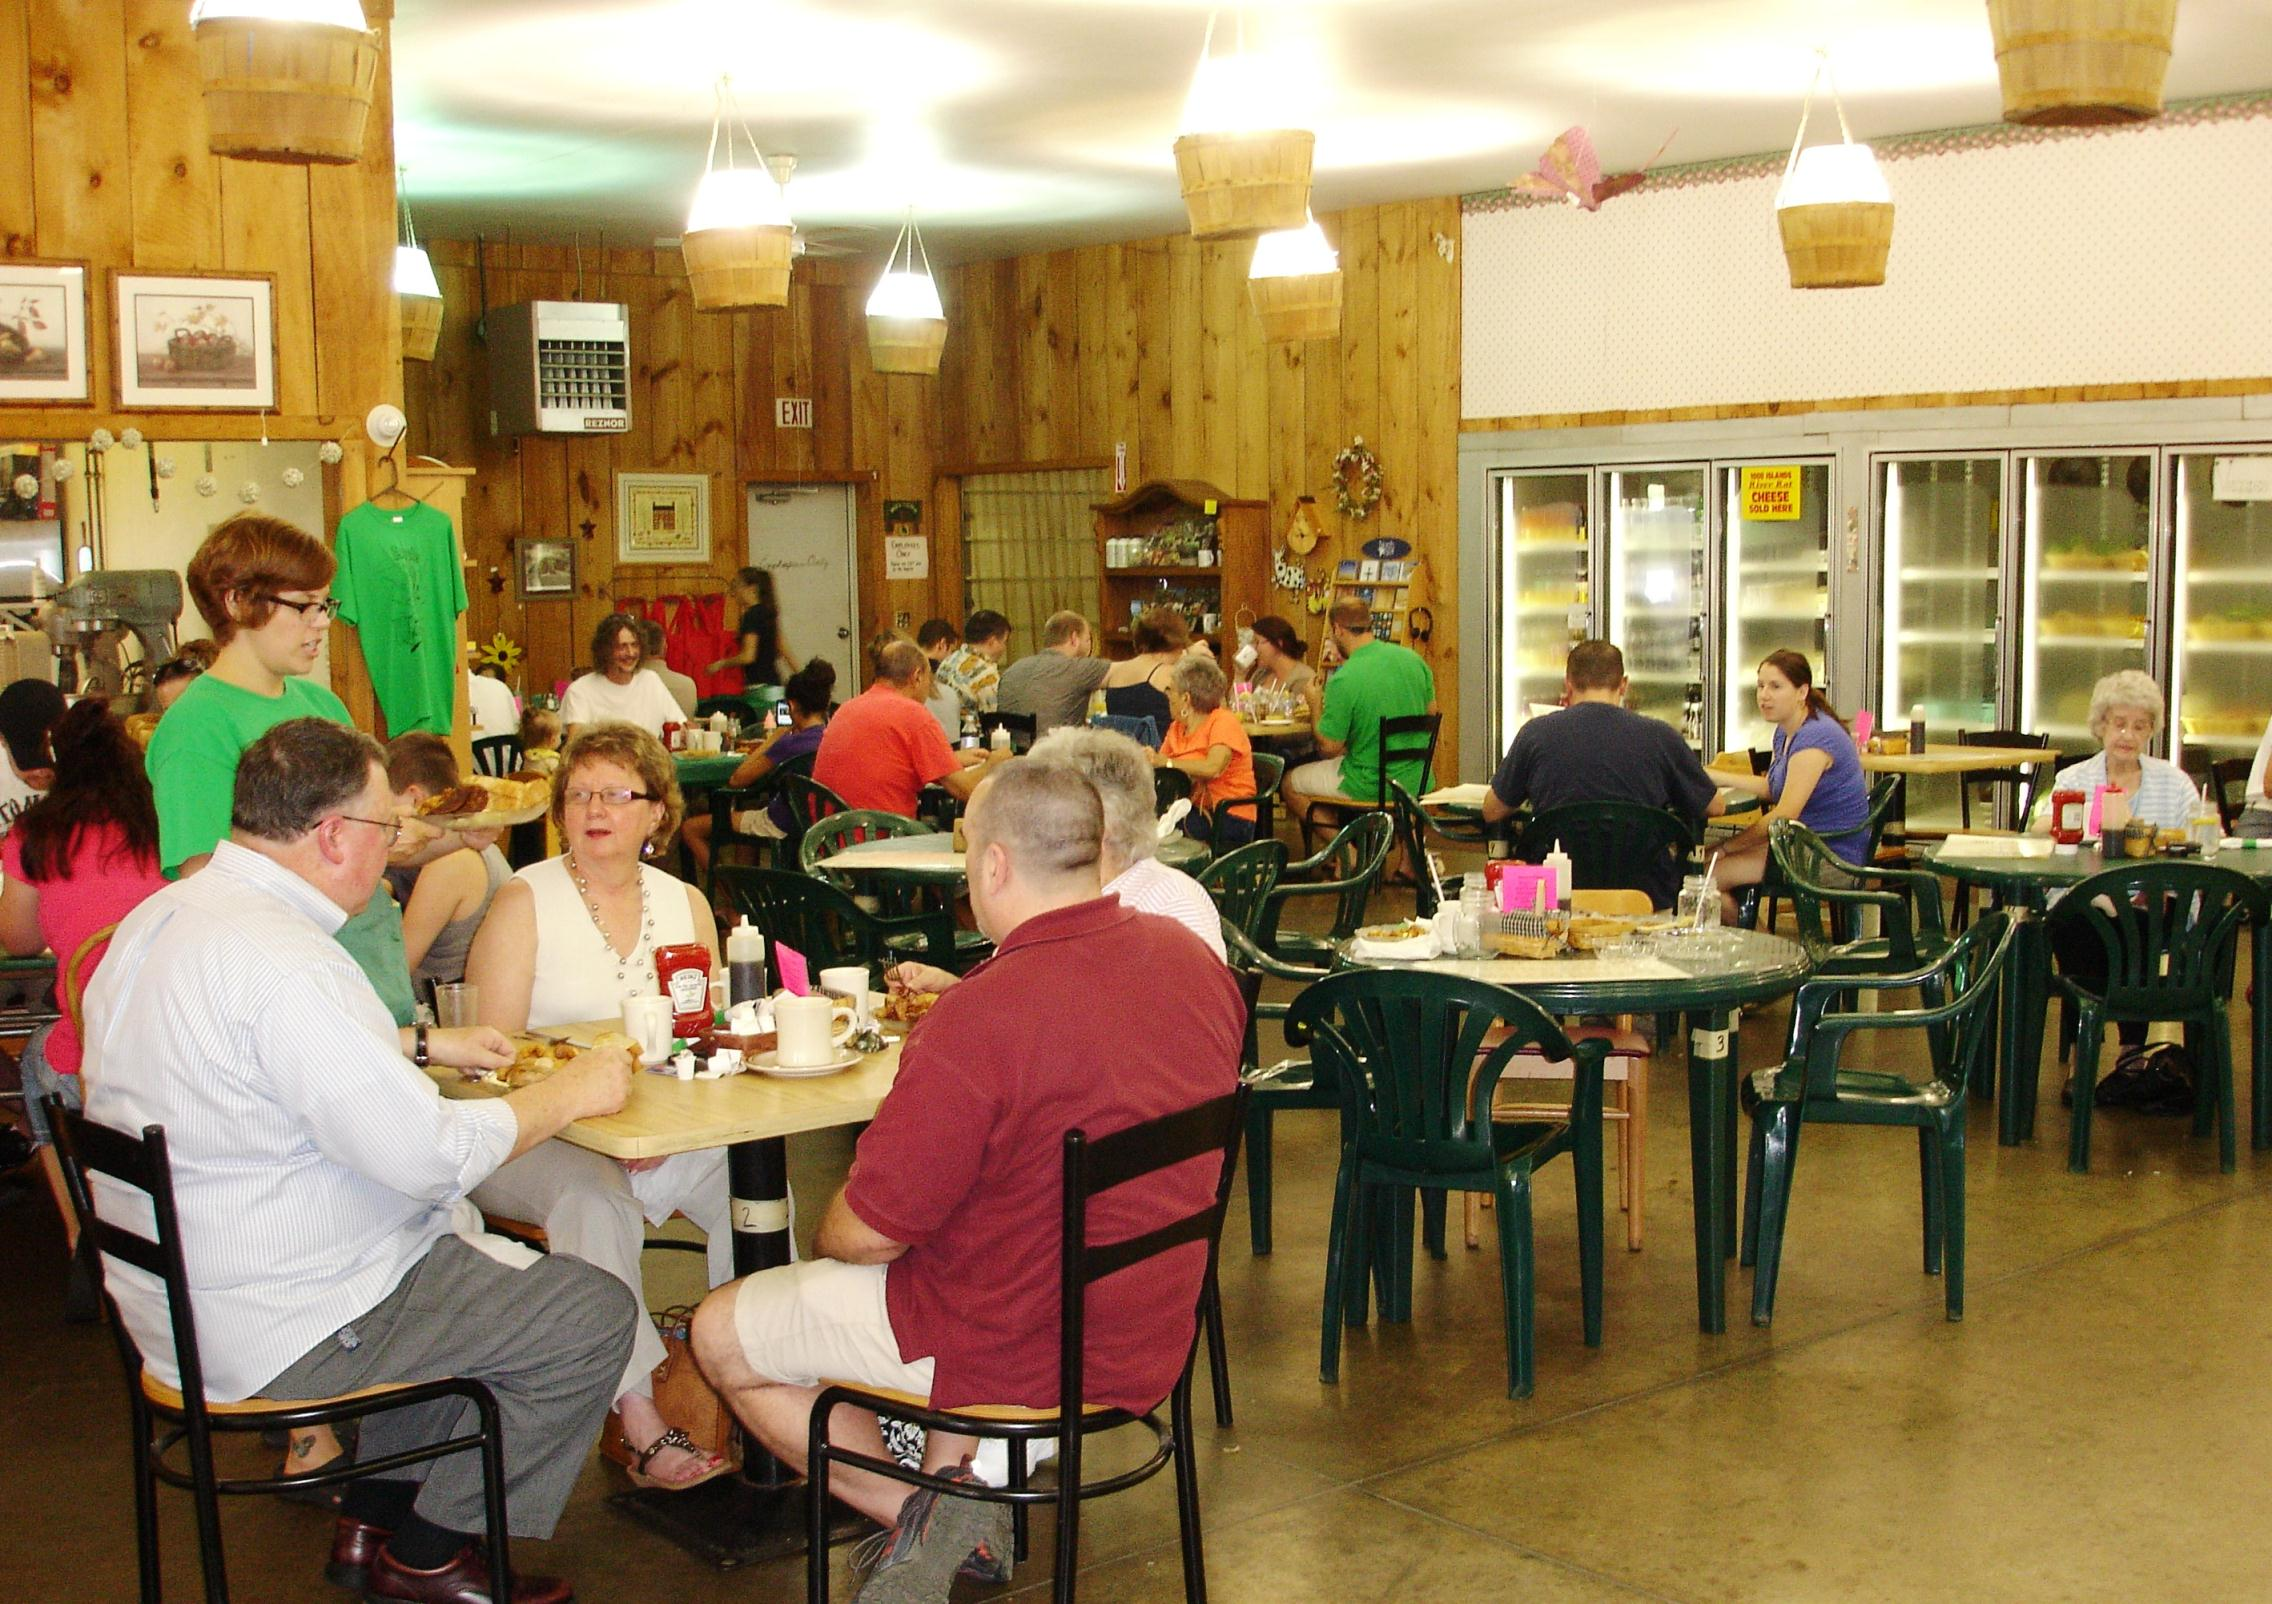 Tables are scattered across a section of the market. Weekend brunch is very popular, and table waits are not uncommon.